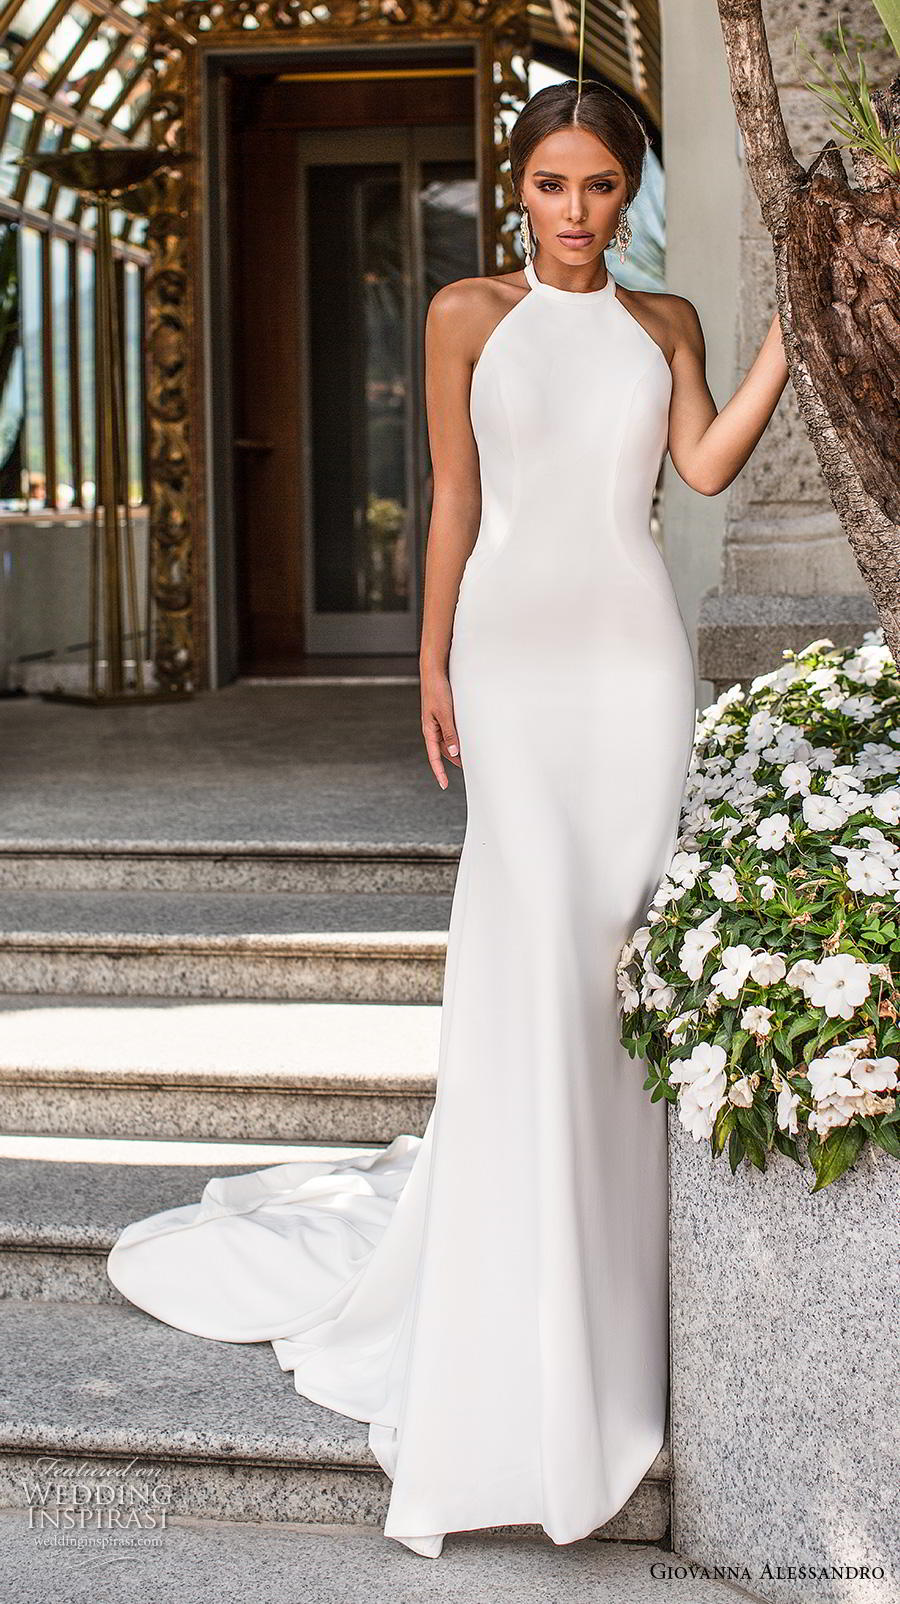 giovanna alessandro 2019 bridal sleeveless halter neck simple minimalist elegant sheath wedding dress backless chapel train (6) mv